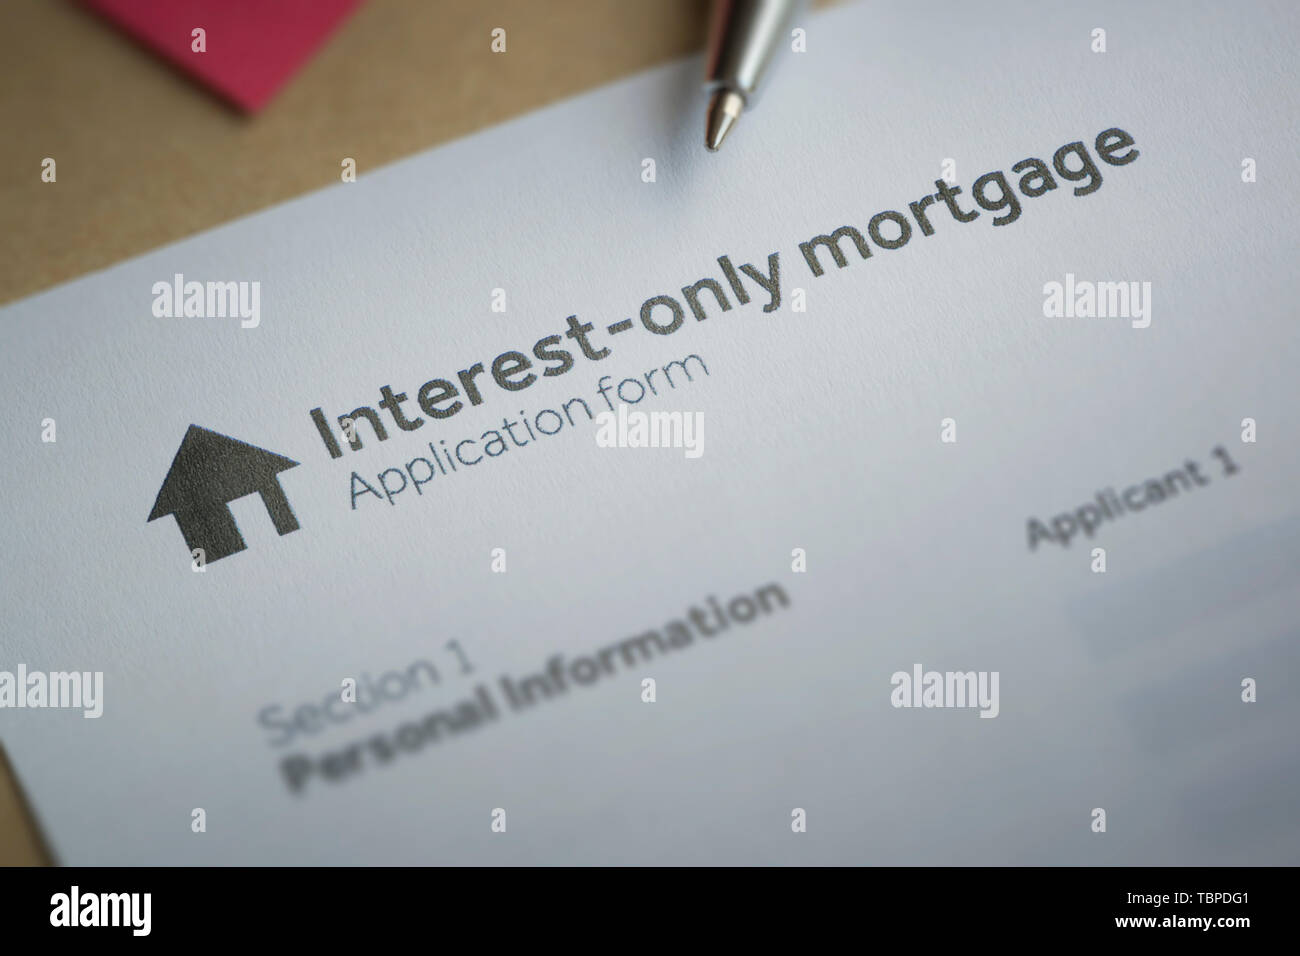 A fictional application form to suggest a person is considering applying for an interest-only mortgage on a home. - Stock Image